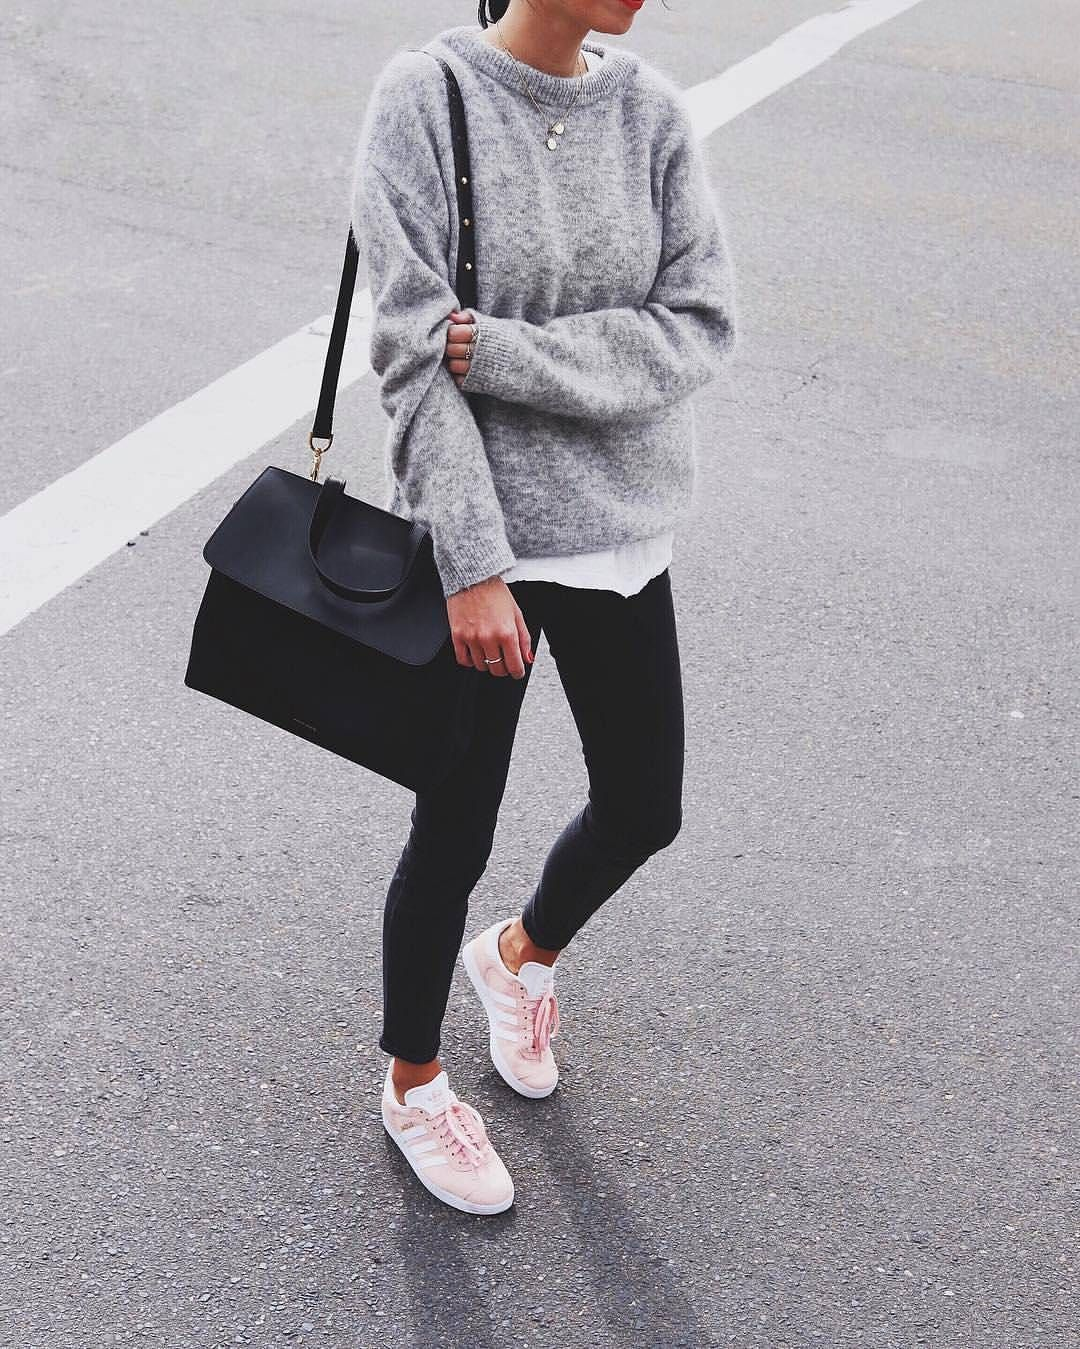 Pin by Celi on Dress me up | Sneakers fashion outfits